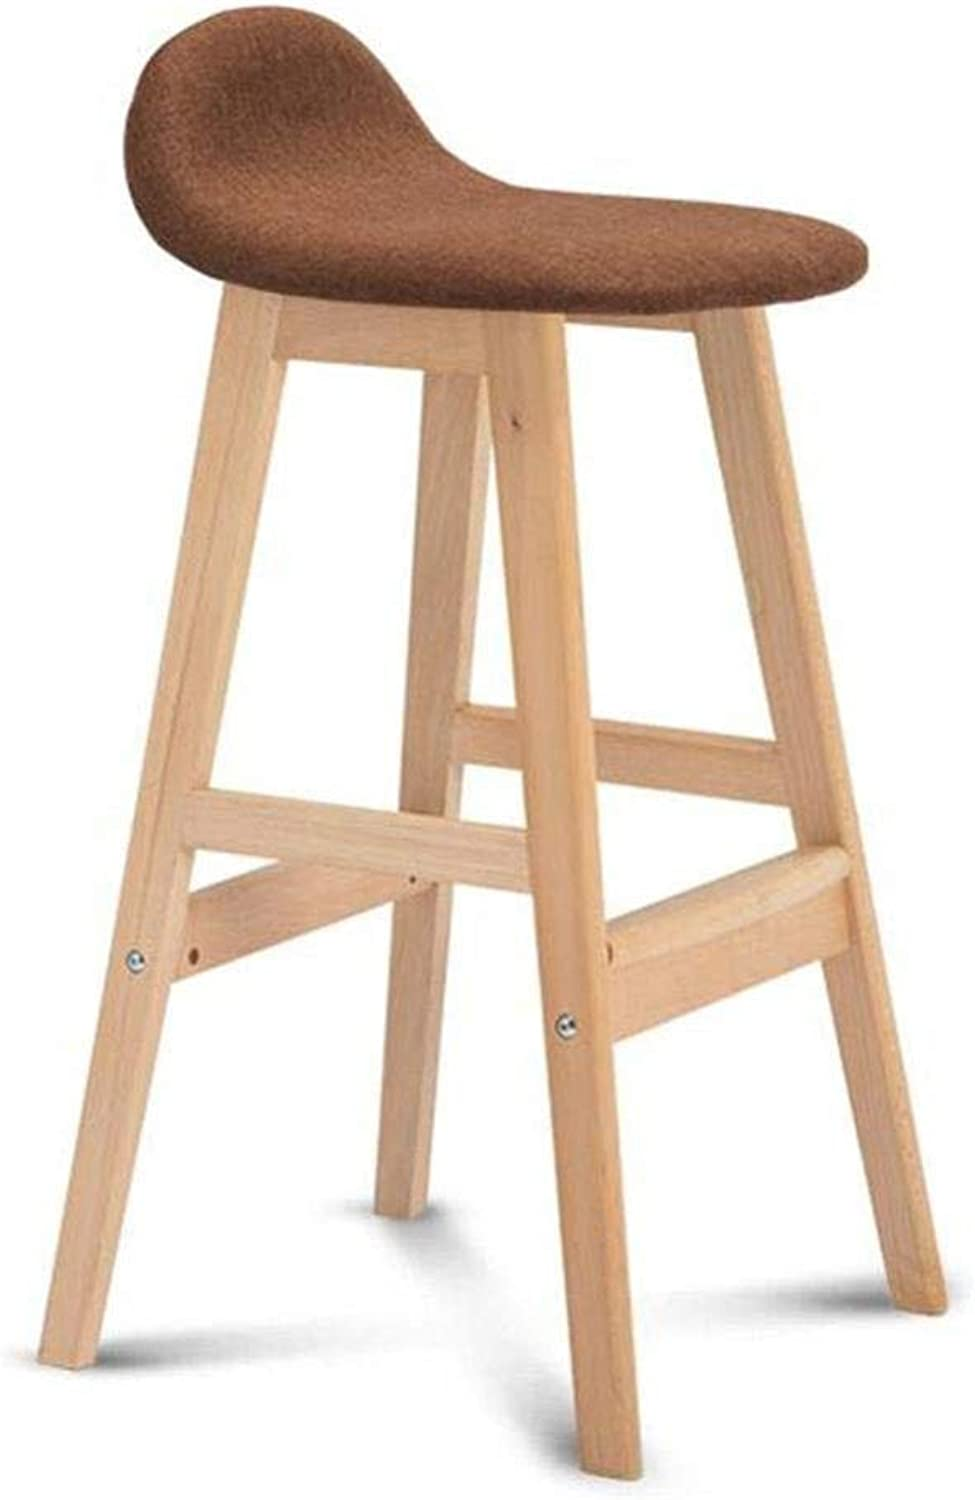 Bar Chairs High Chair Solid Wood Modern Kitchen Breakfast Stool Removable Linen Cover,A